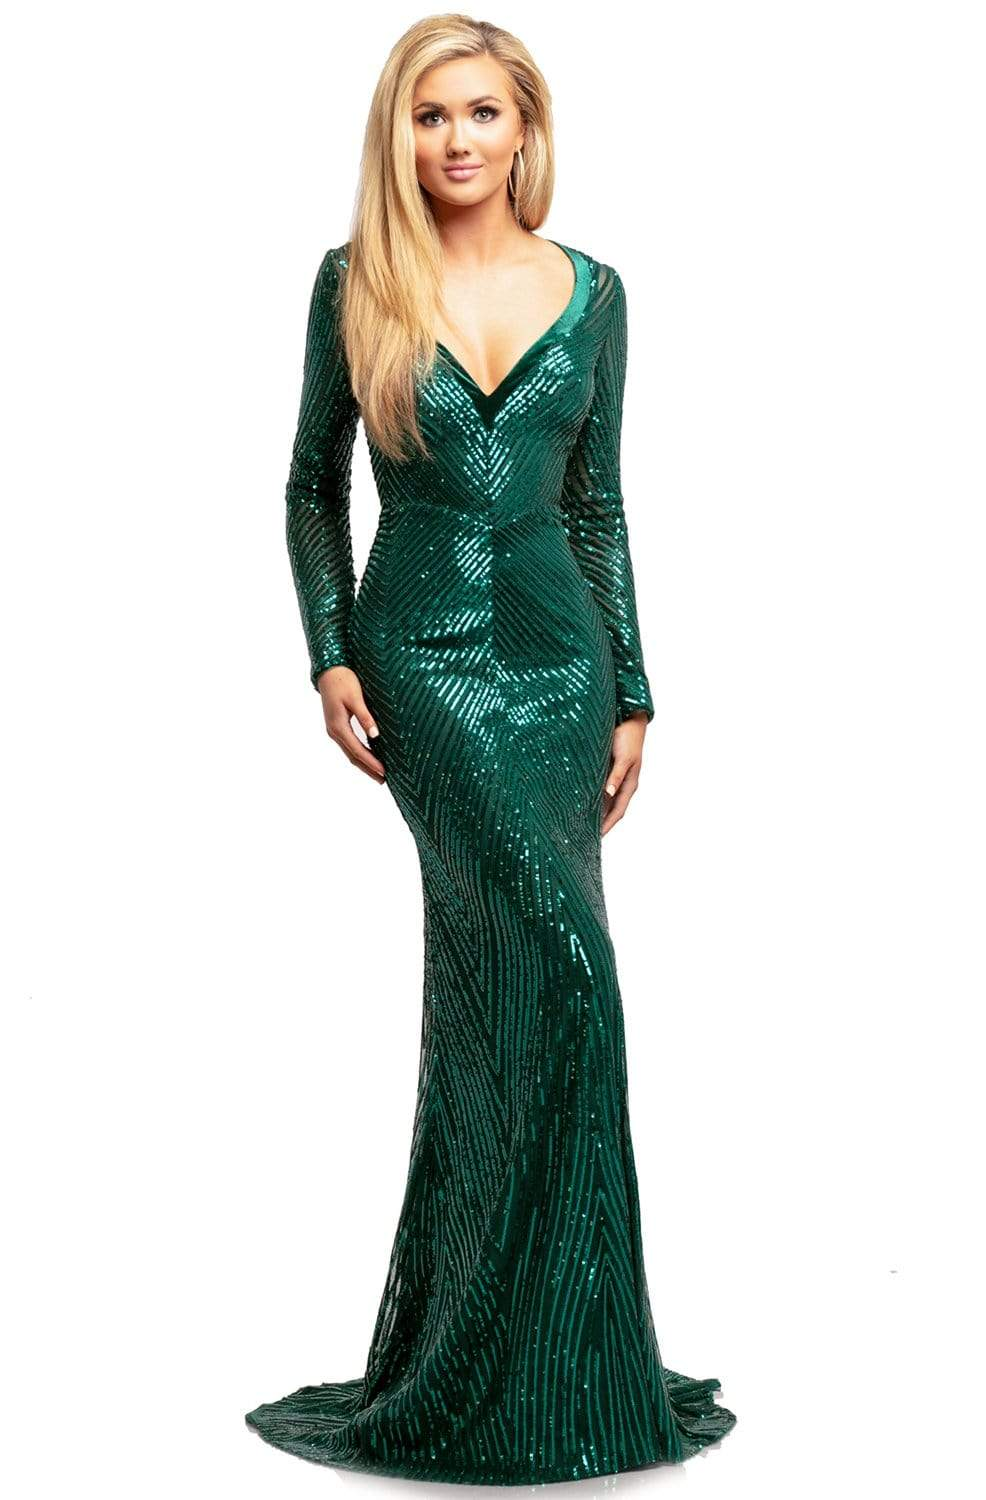 Johnathan Kayne - 2020 Wide V Neck Long Sleeve Sequin Evening Gown Evening Dresses 00 / Jade